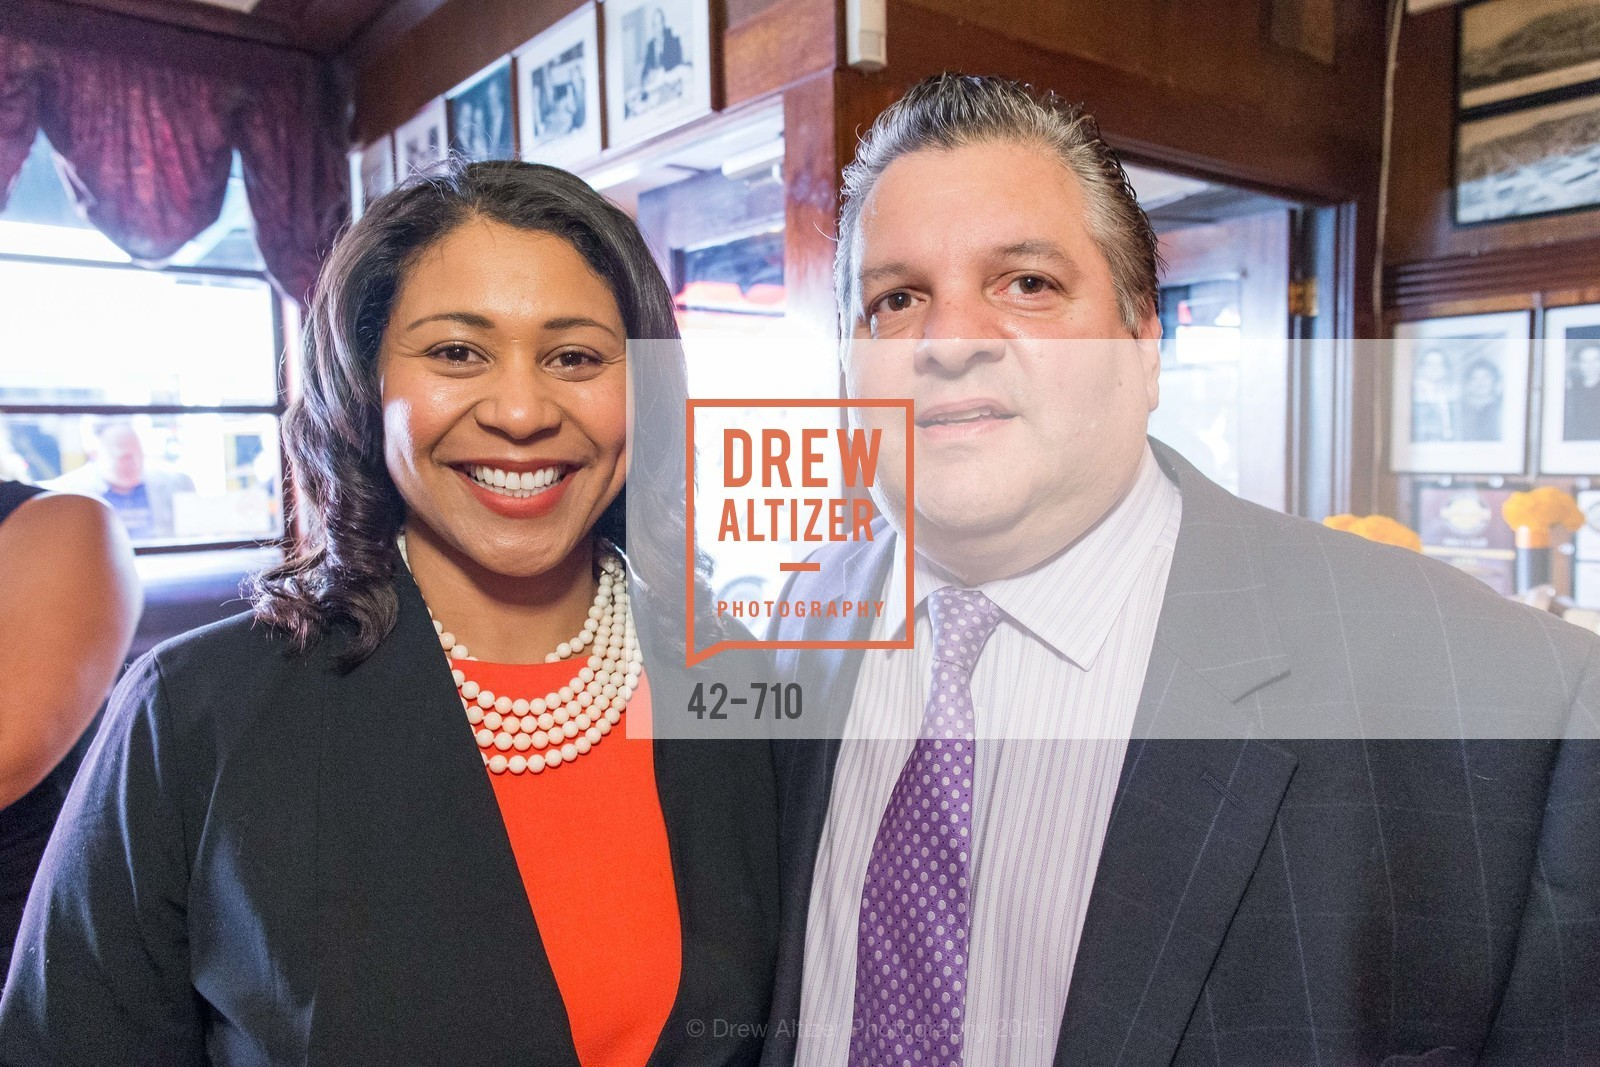 London Breed, John Konstin, 3-RING LUNCH CELEBRATION Honoring RENEL BROOKS-MOON, US, June 8th, 2015,Drew Altizer, Drew Altizer Photography, full-service agency, private events, San Francisco photographer, photographer california